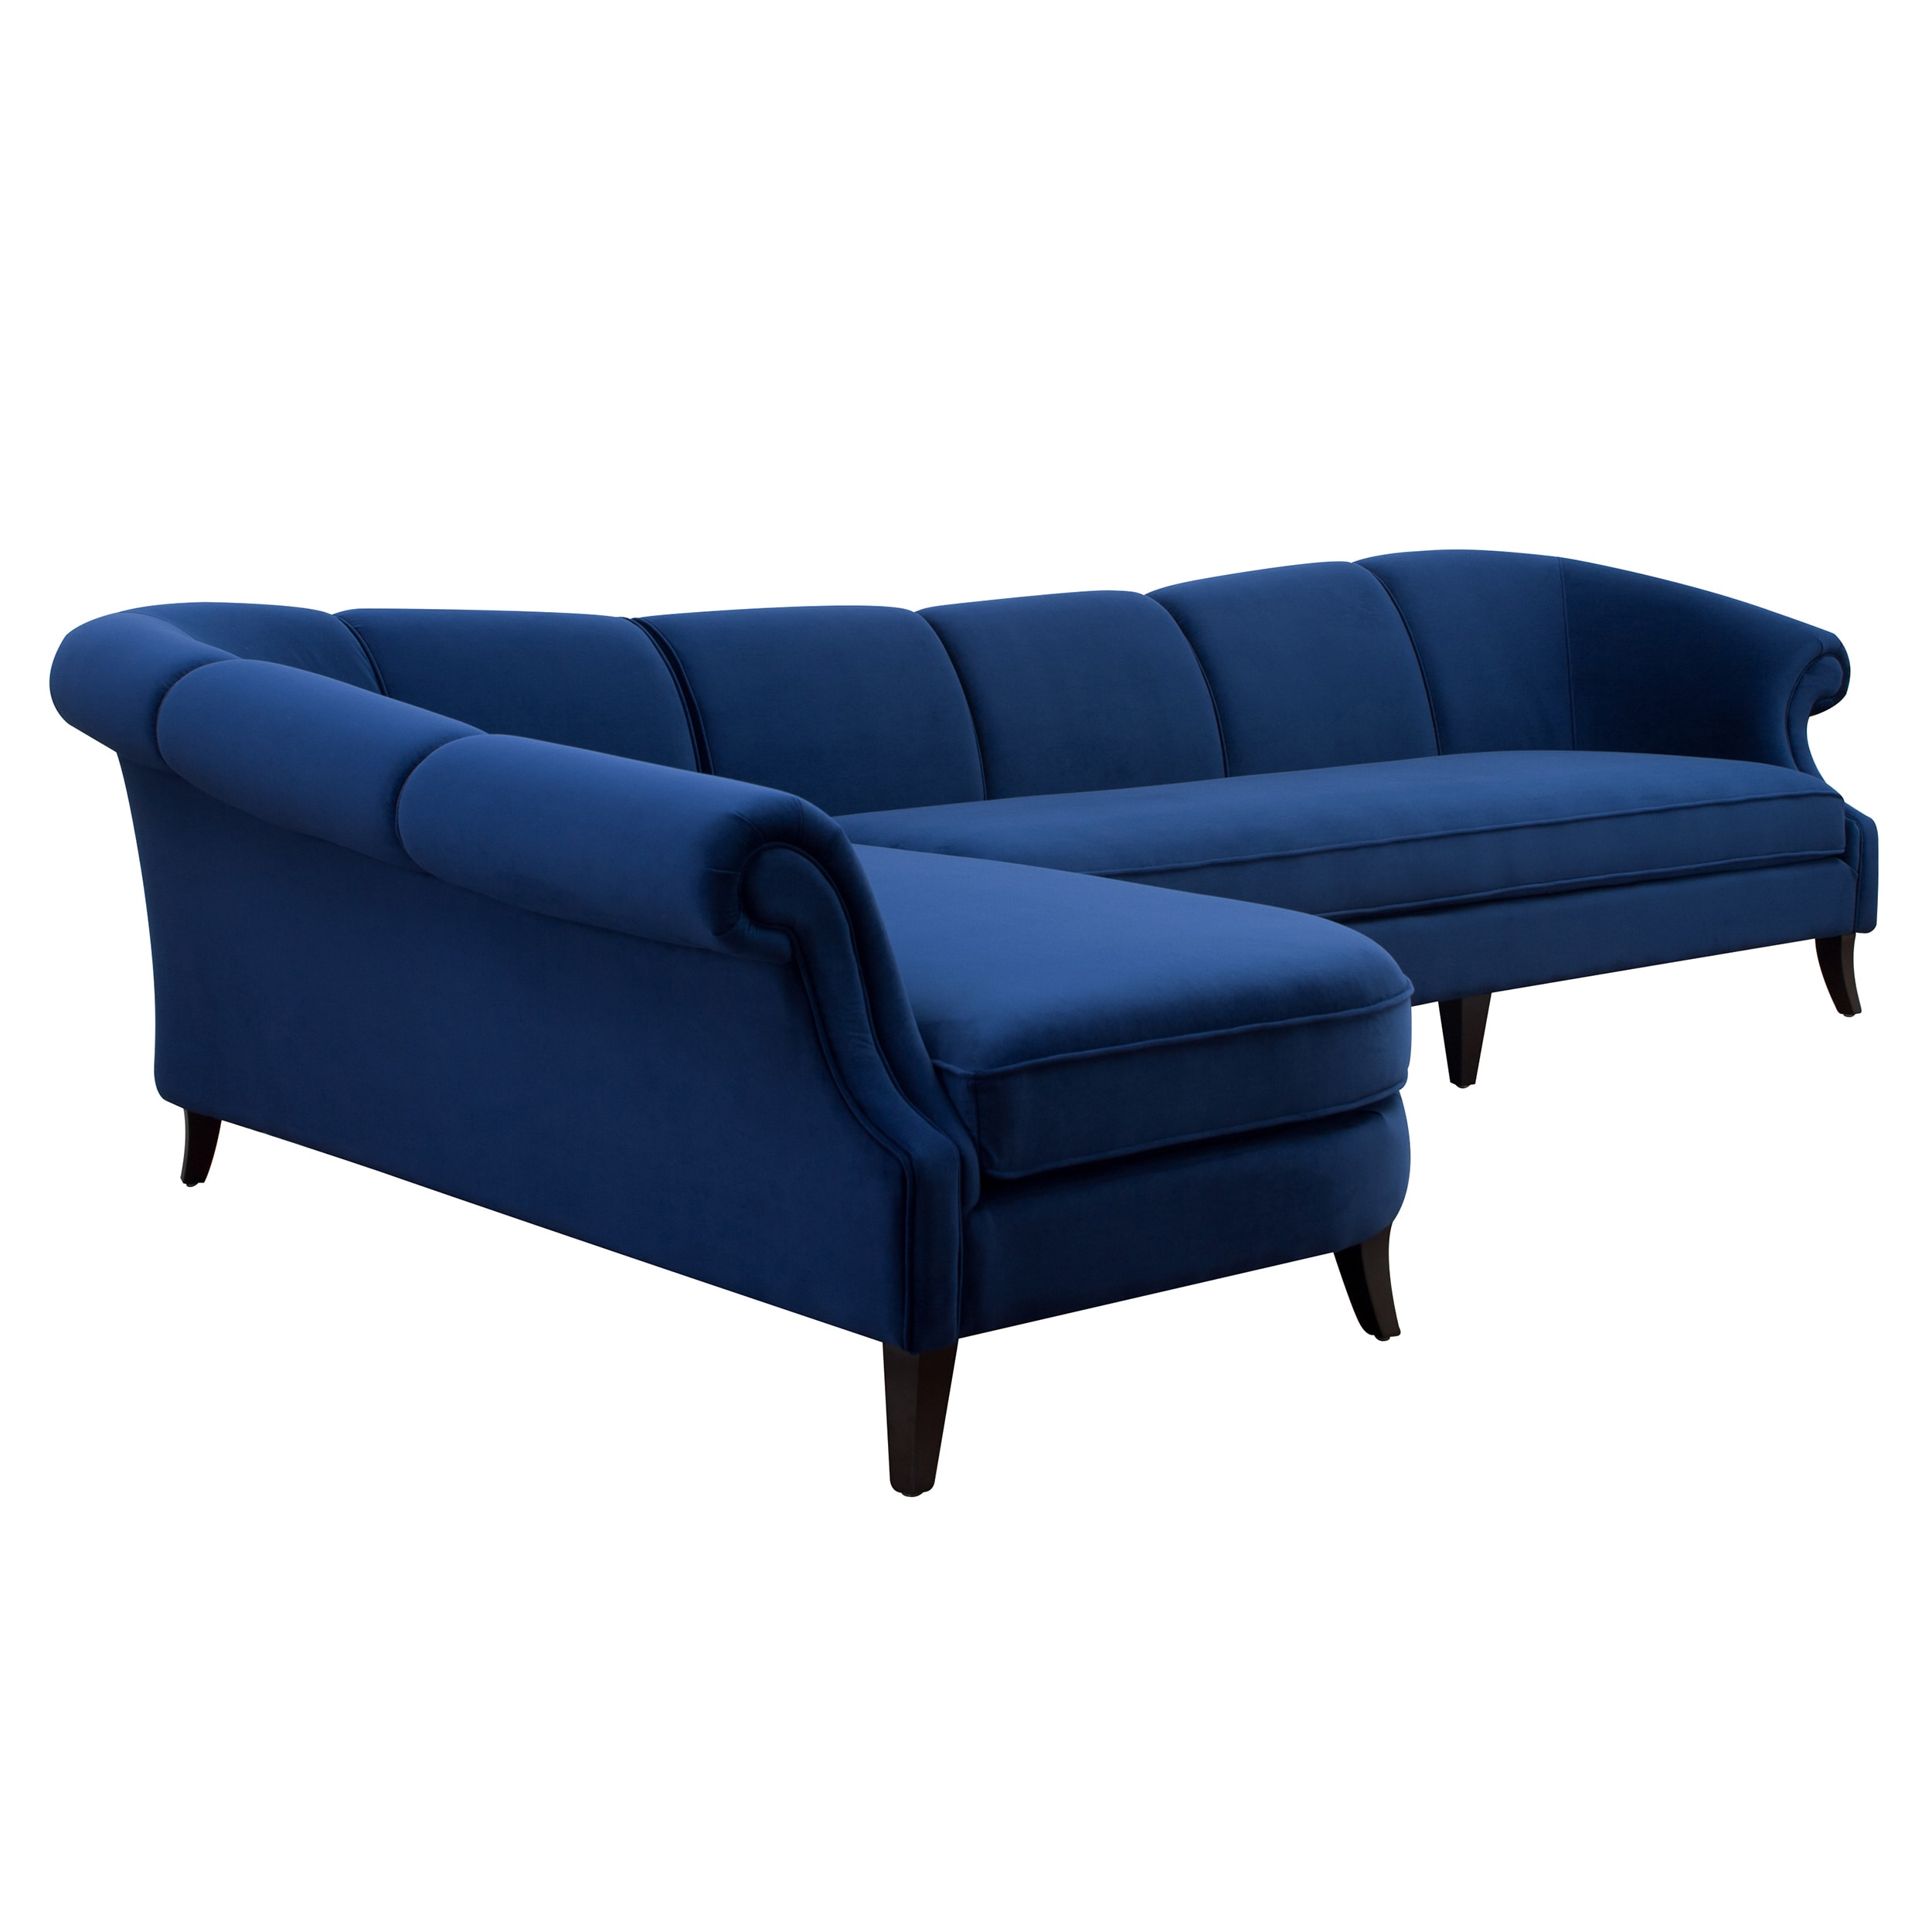 Beau Shop Jennifer Taylor Victoria Upholstered Sectional Sofa   On Sale   Free  Shipping Today   Overstock.com   13986652